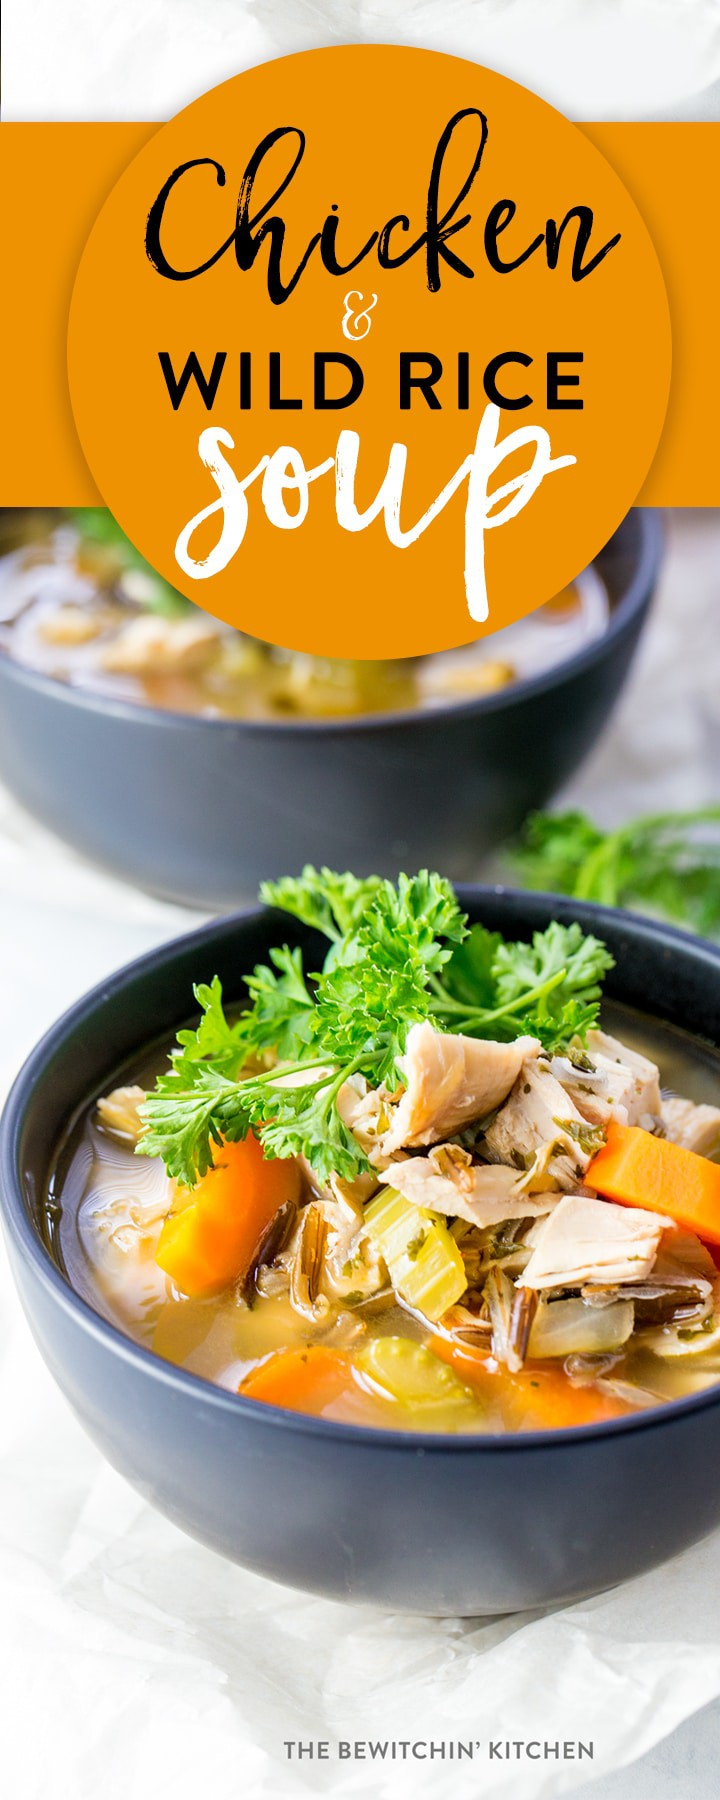 Chicken and wild rice soup. This hearty and healthy recipe is broth based and a clean eating soup favorite. No cream, dairy free, and gluten free! Wild rice, carrots, chicken breast, onion, and more classic ingredients make this a wholesome, soul hugging recipe.